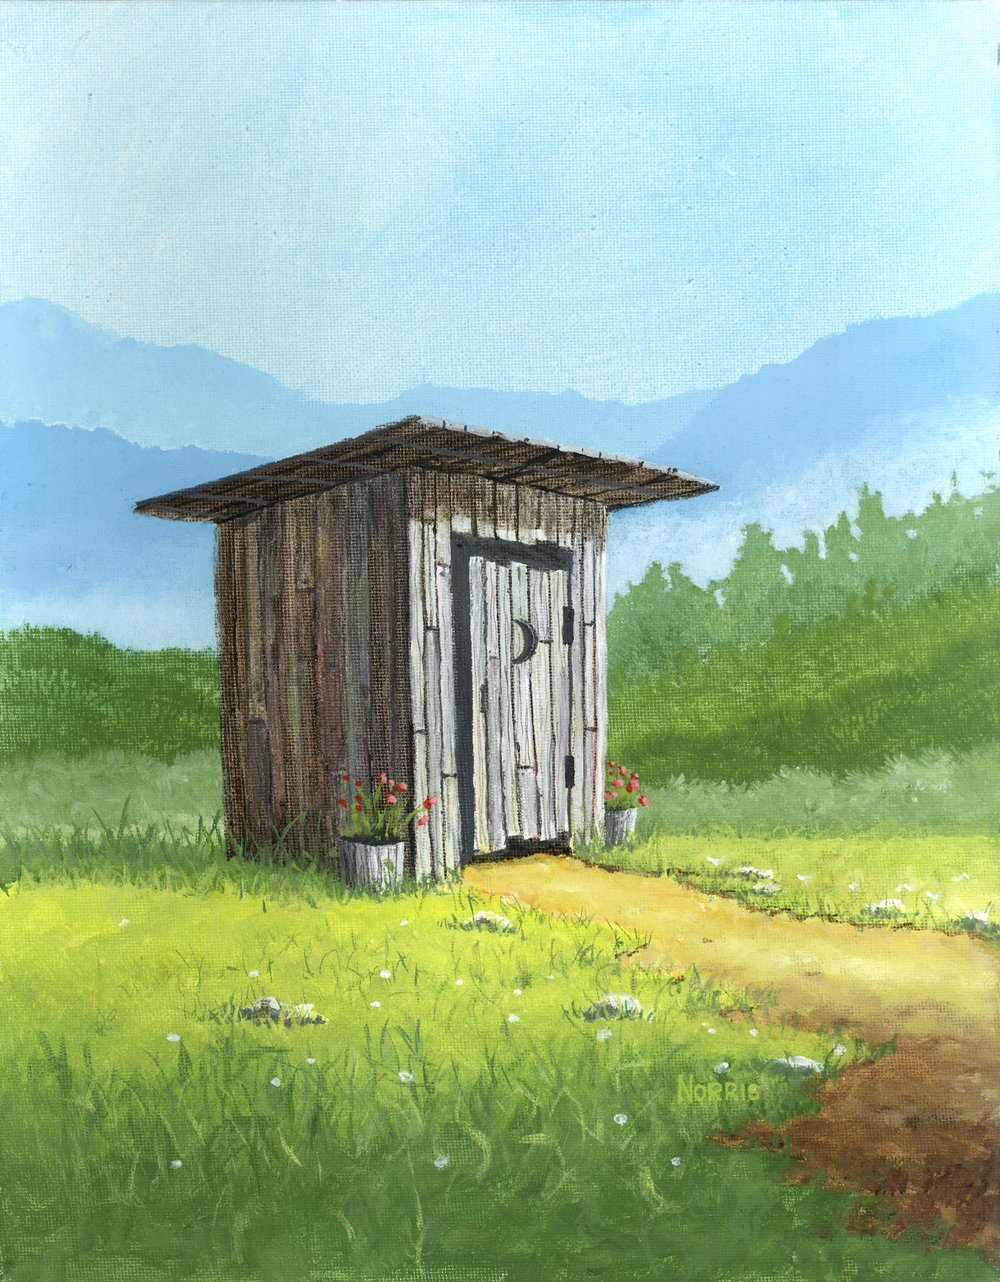 Outhouse #3